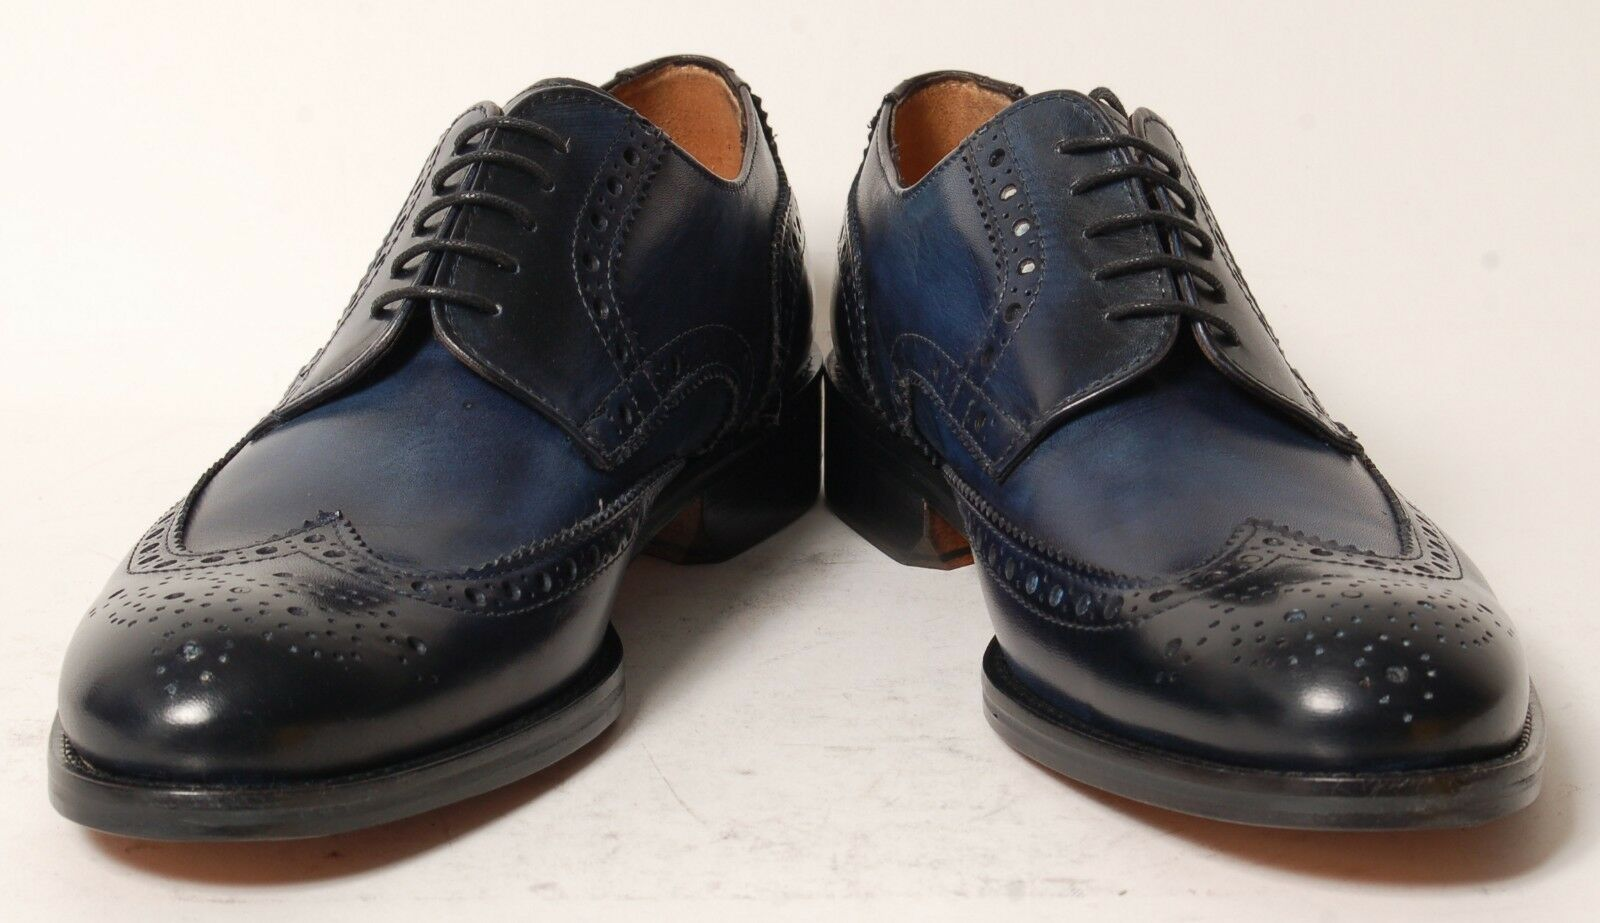 Chaussures - Antica Calzoleria Campana Mod. 1220 Déstockage ! ! ! 30% Remise 85feed